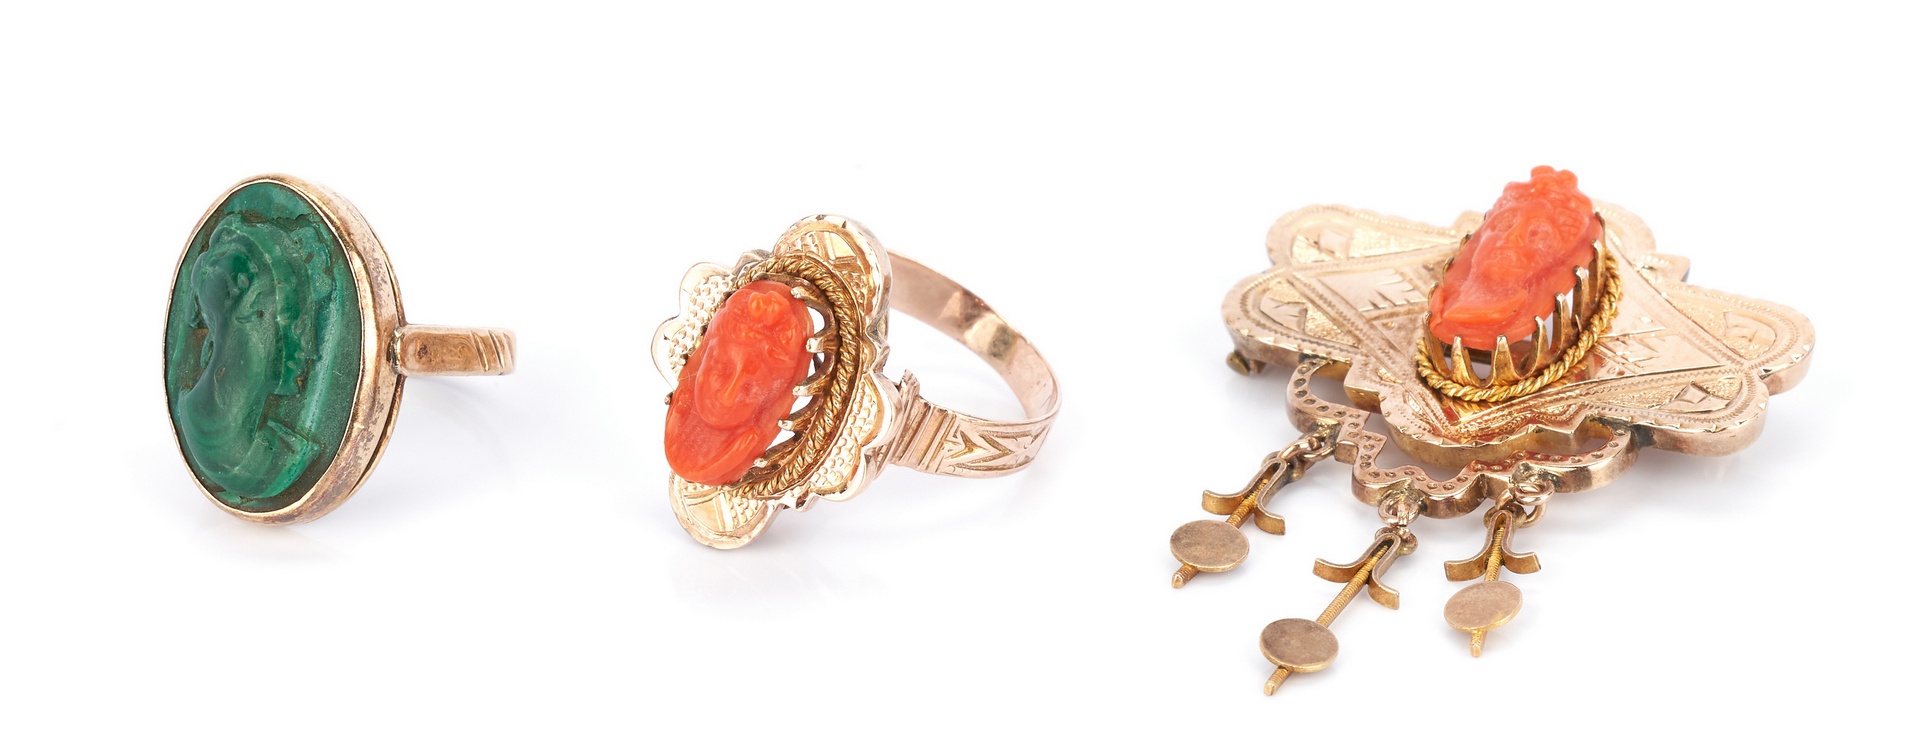 Lot 1041: 2 Ladies 10K Rings and 1 Brooch with Cameos